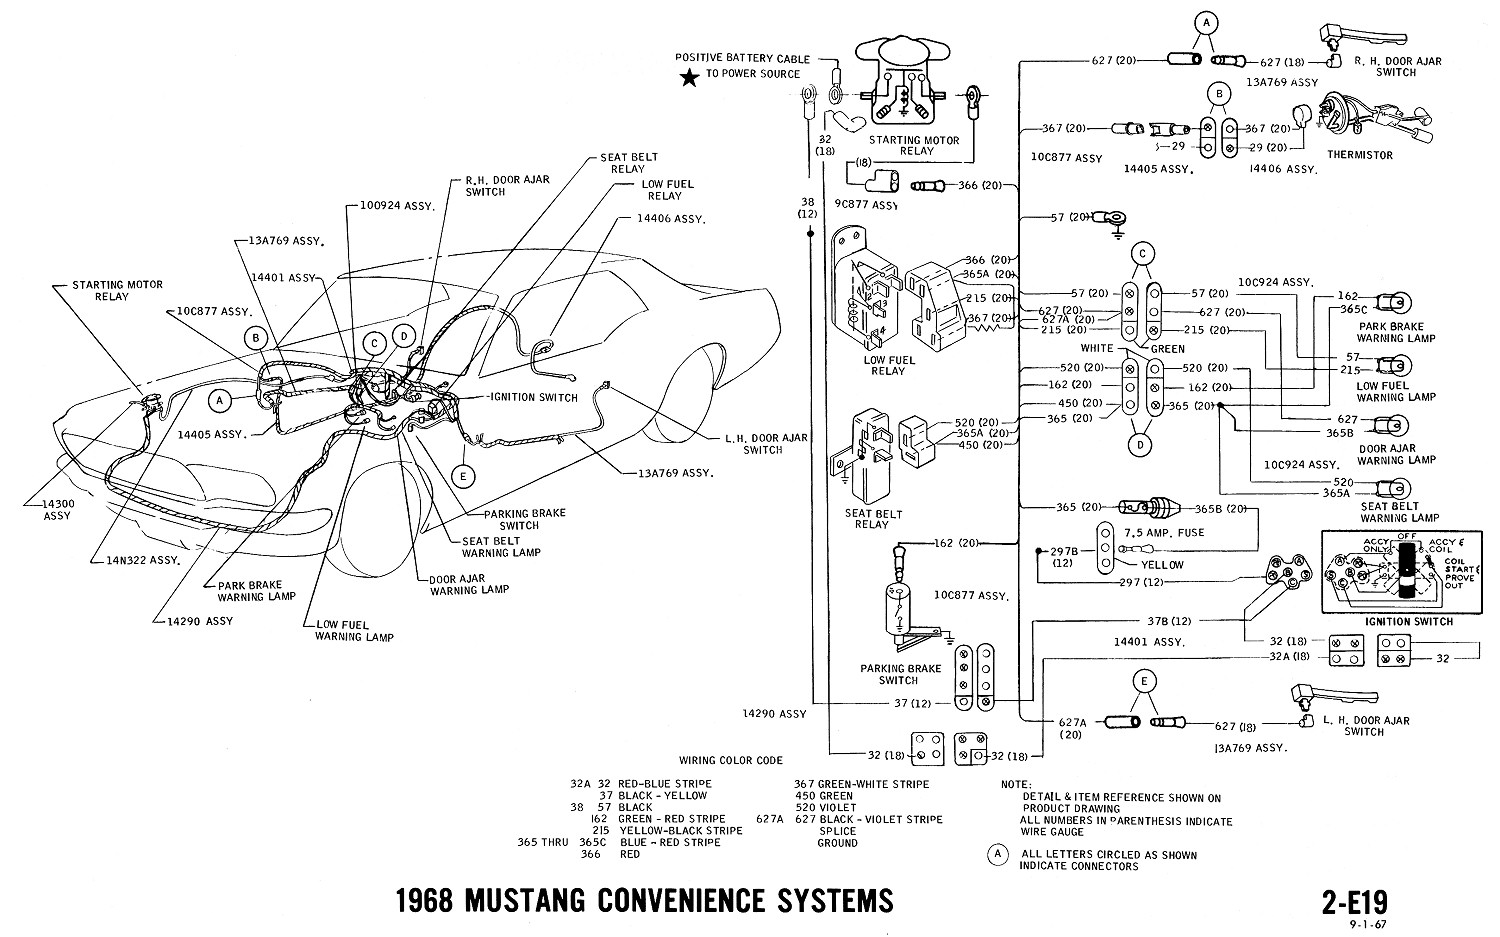 1967 Mustang Wiring And Vacuum Diagrams Average Joe